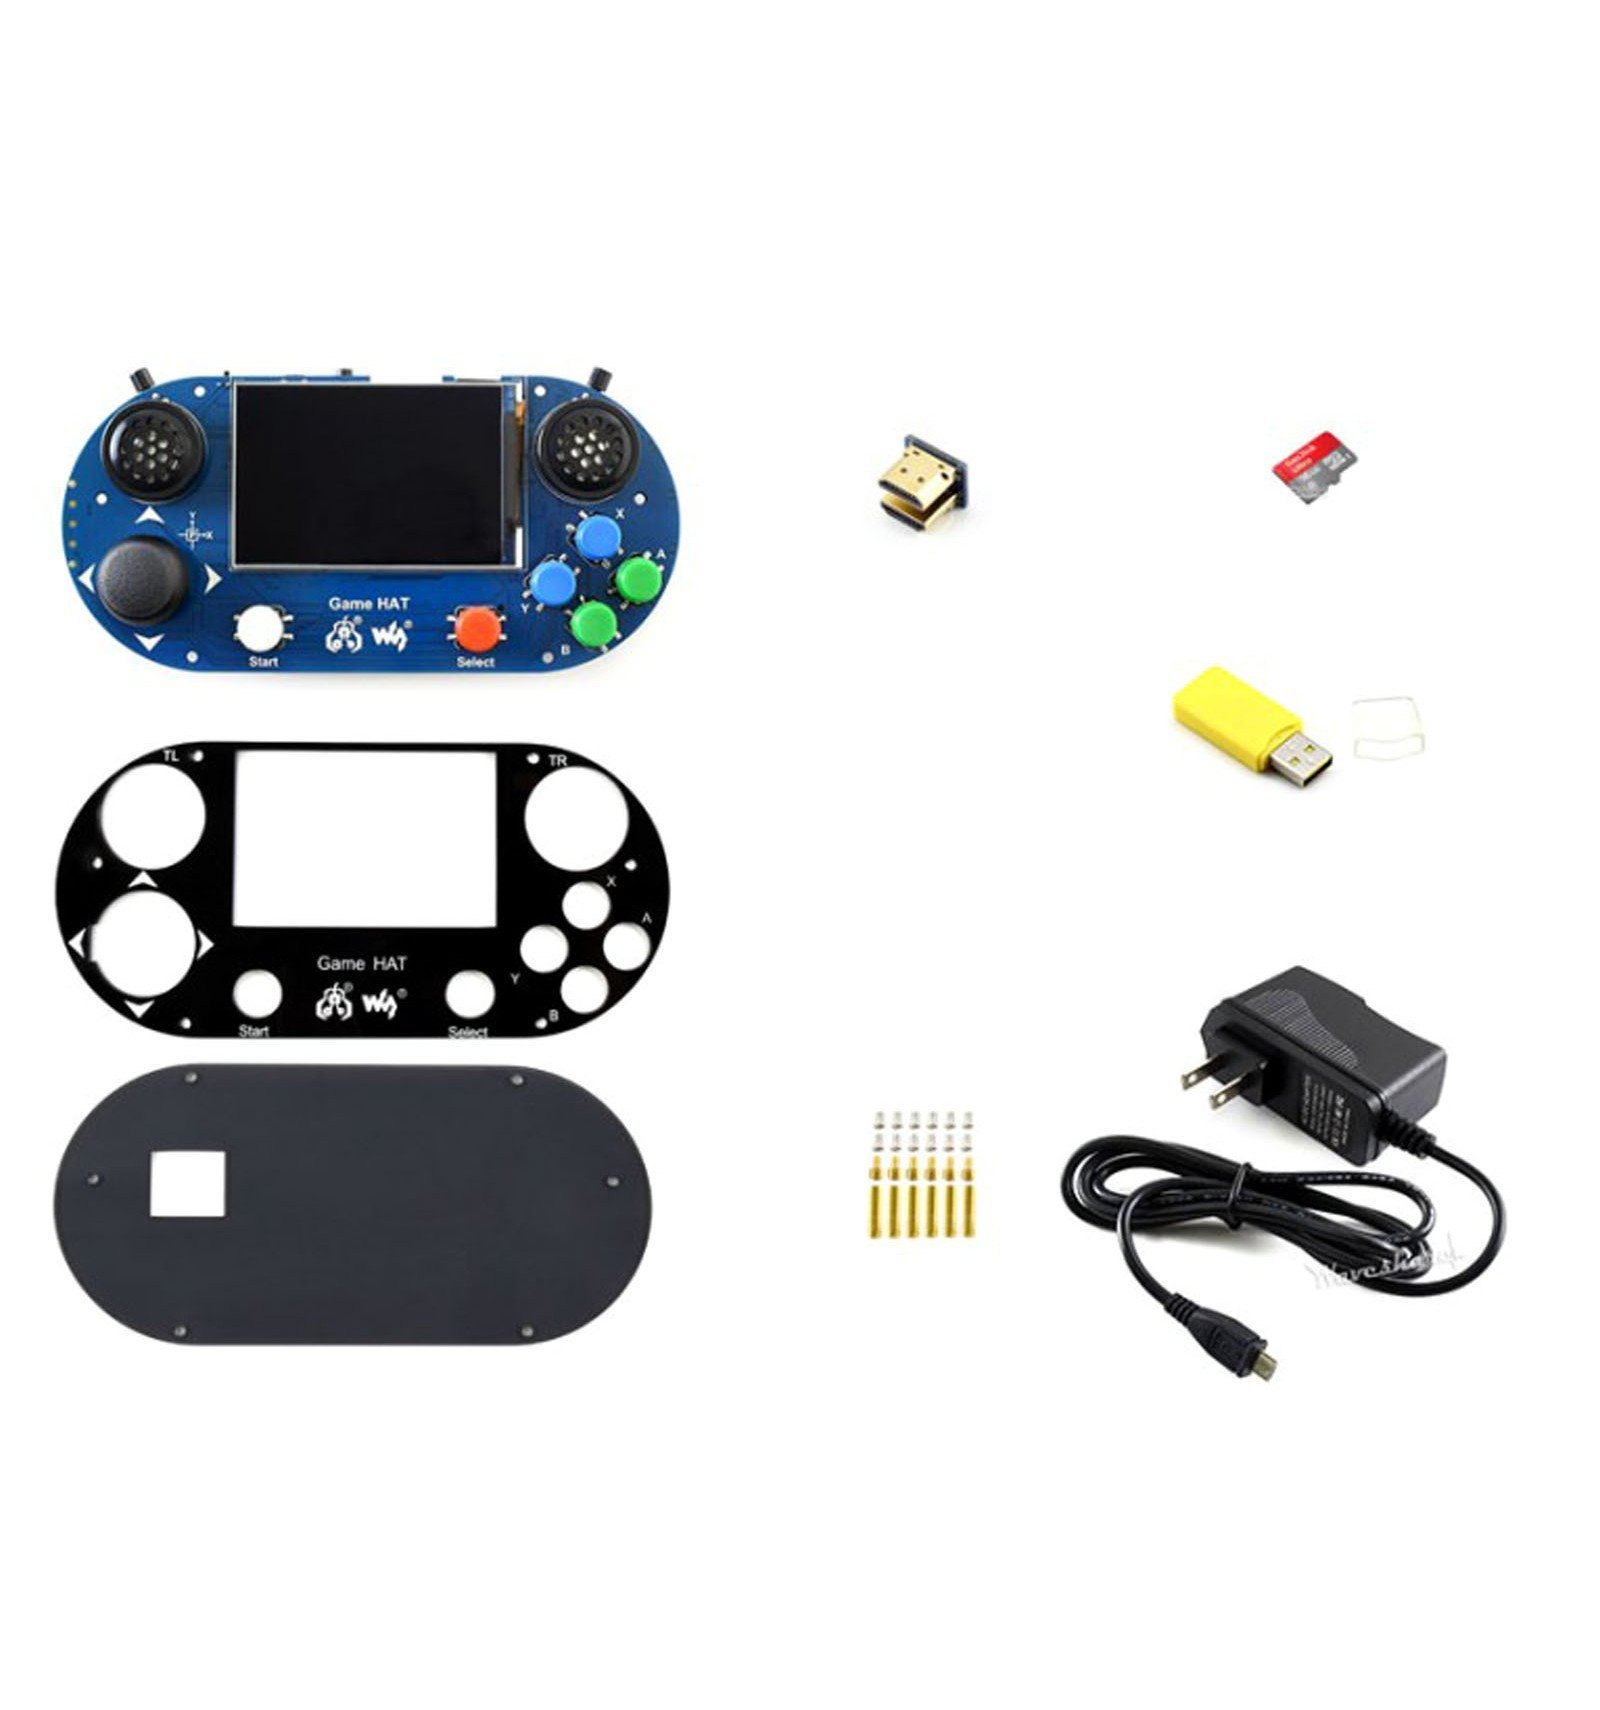 Raspberry Pi Accessories Pack | Handheld Gaming Kit